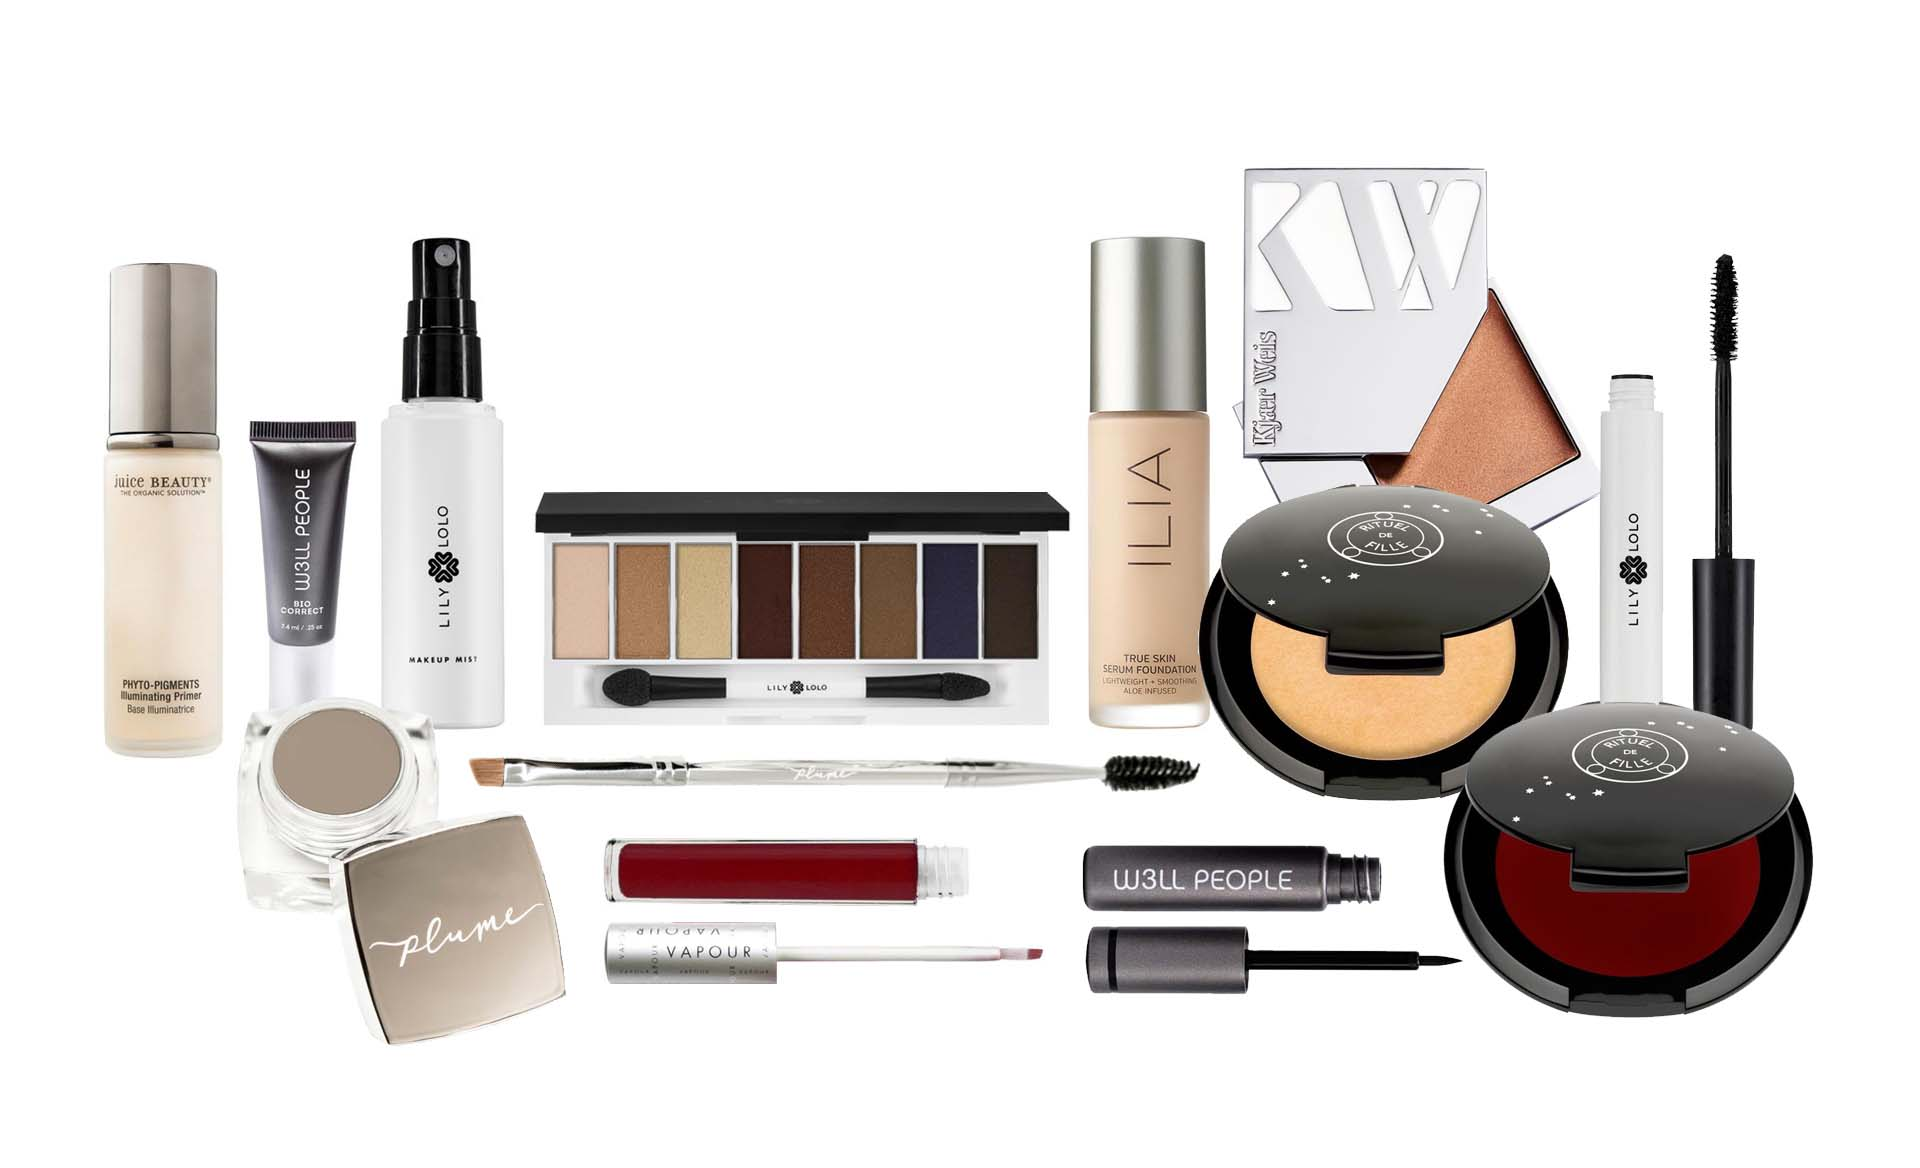 <font color= #418993>Here's your Glam look with a dewy finish</font> 1